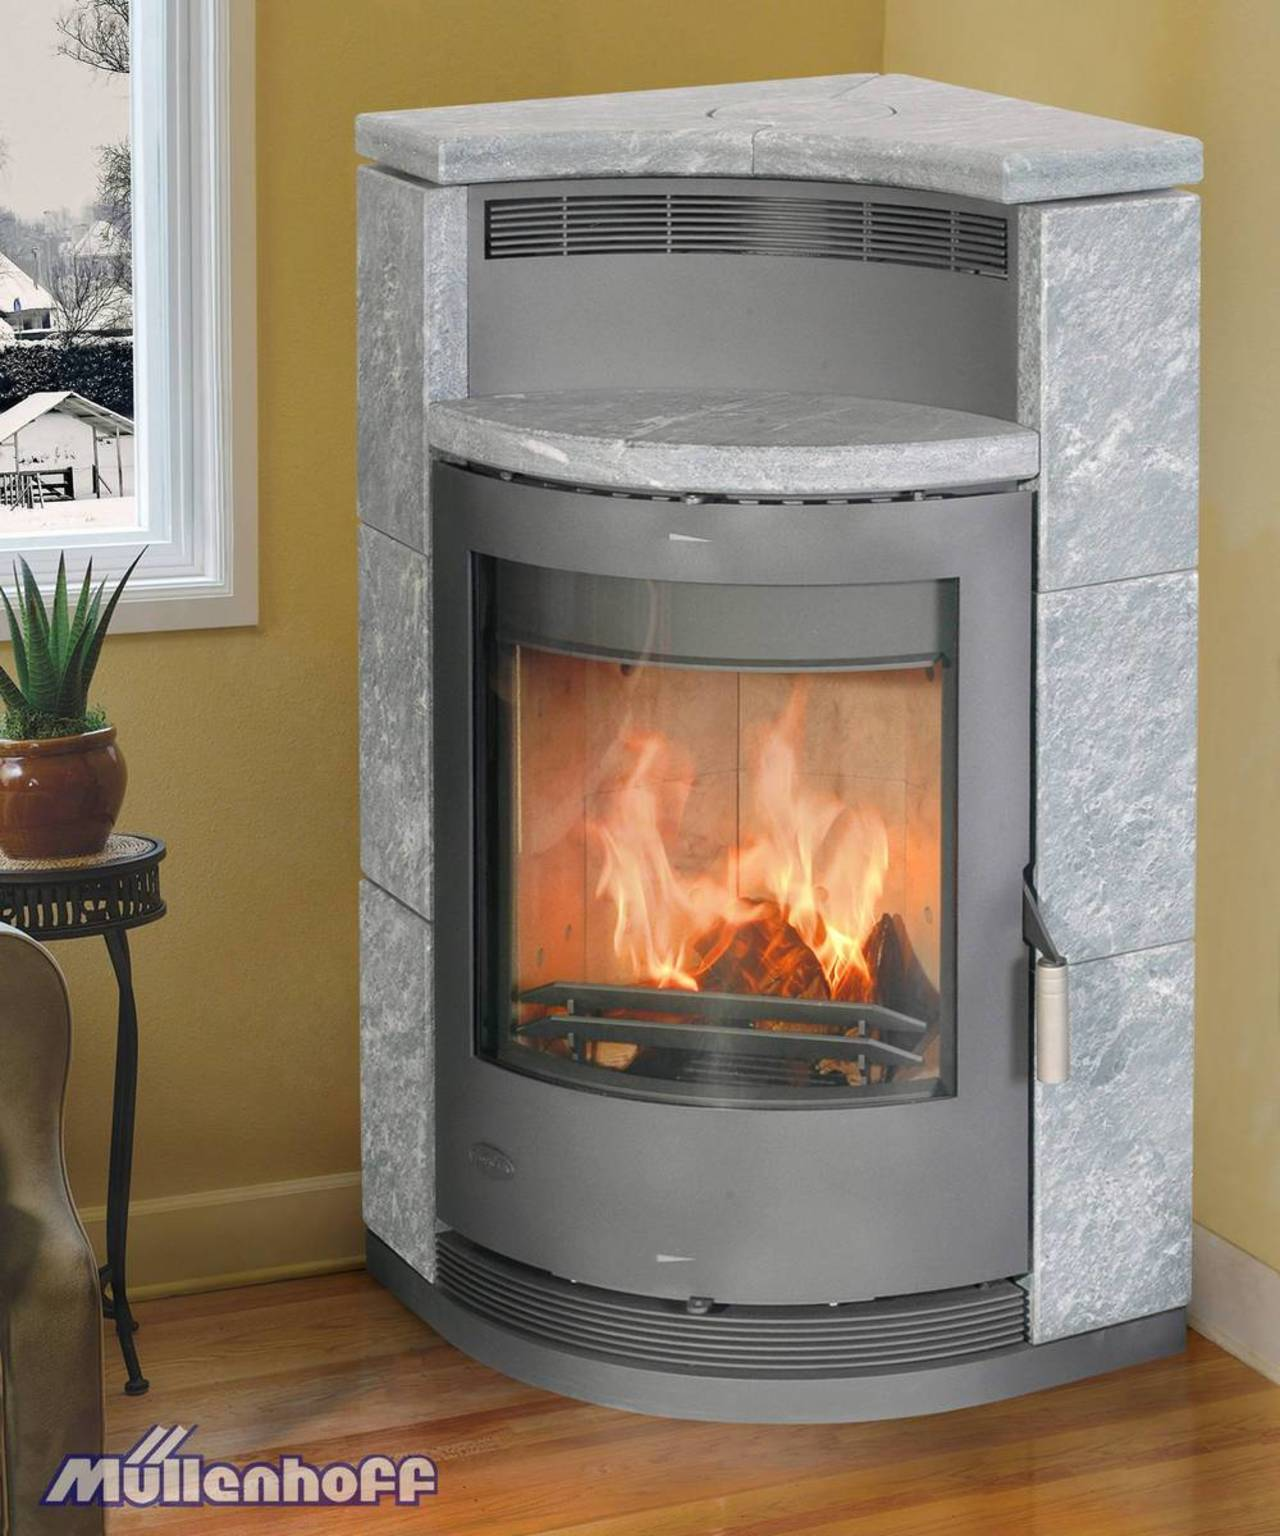 fireplace kaminofen lyon naturstein eck kamin 8 kw kamin ofen ebay. Black Bedroom Furniture Sets. Home Design Ideas